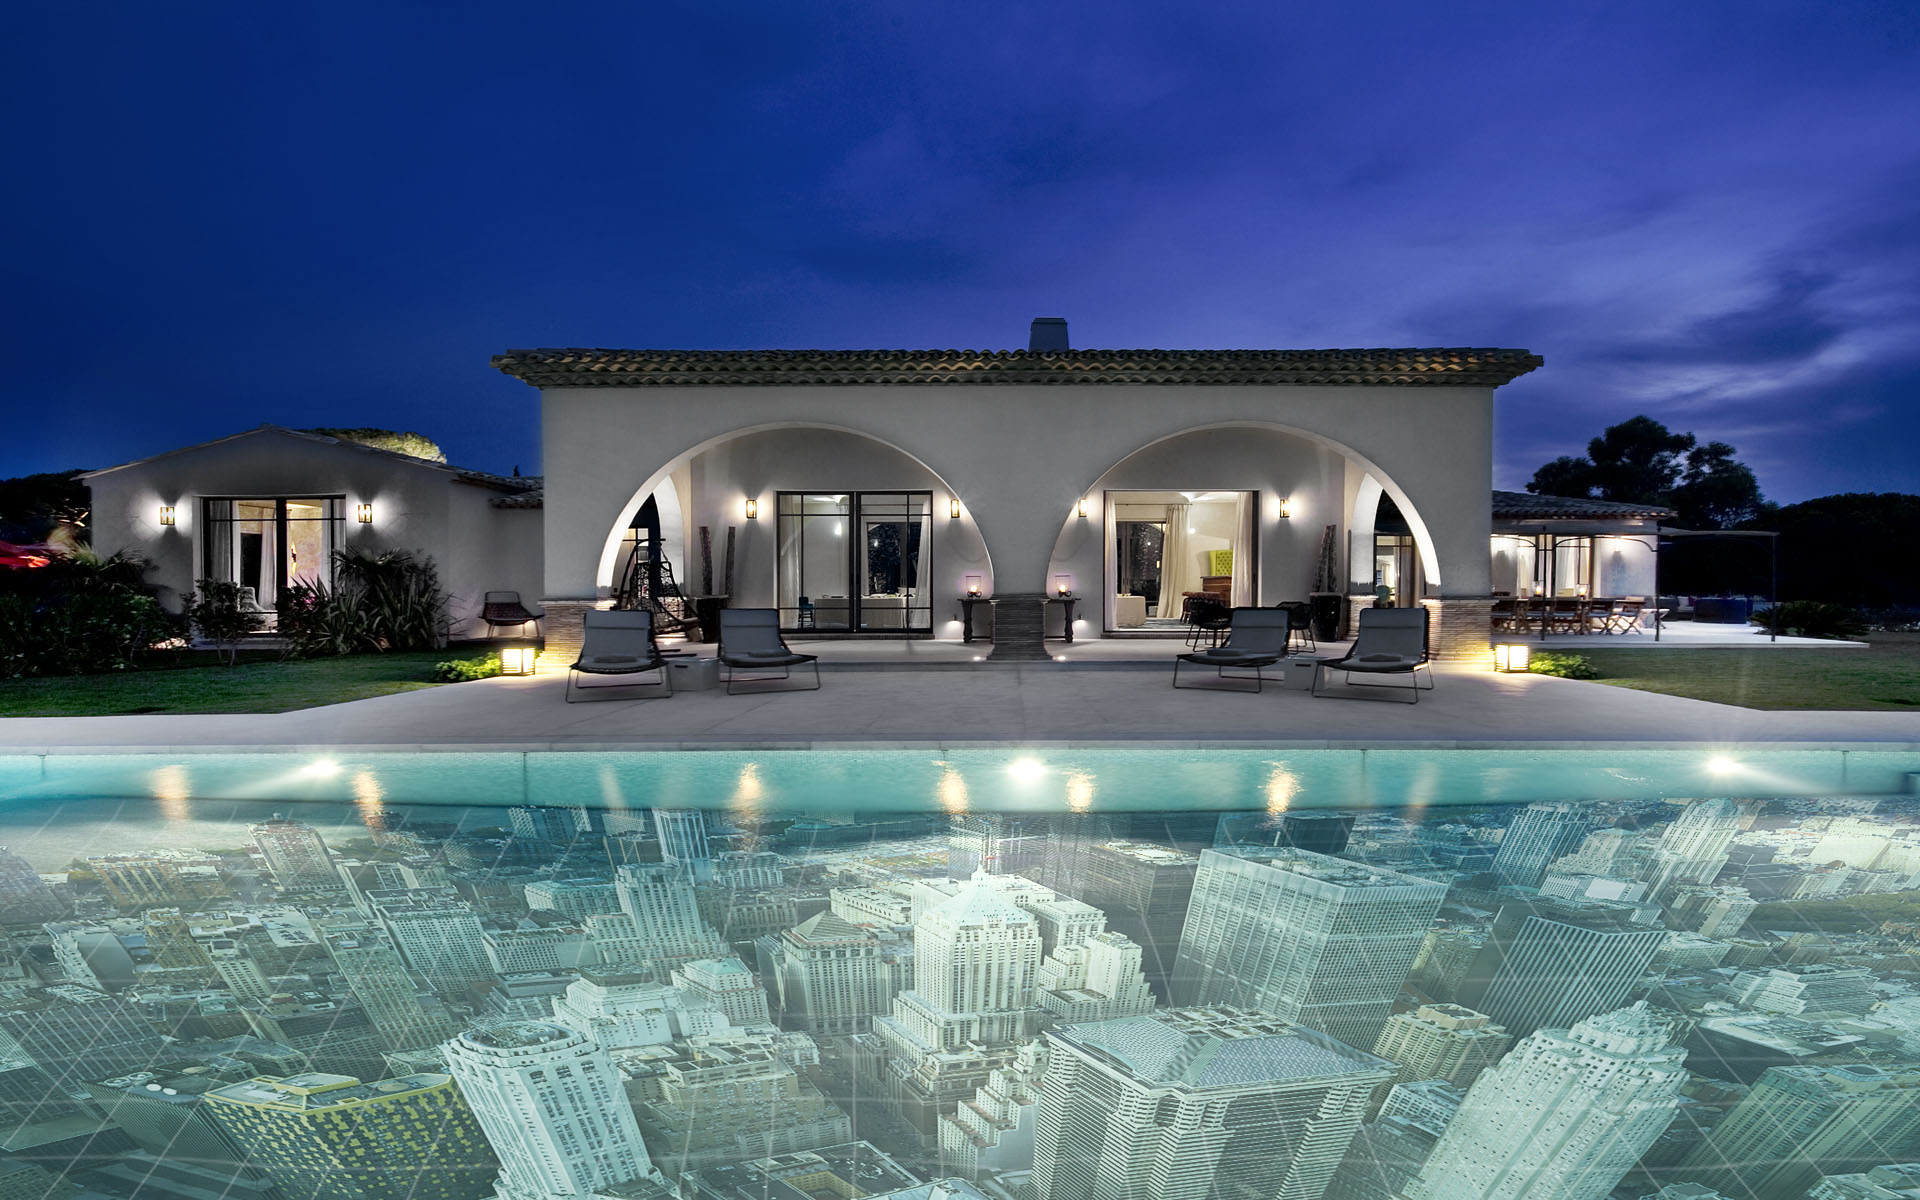 Amazing Swimming Pool With City View Decorative Tiles Grey Pave Outdoor Flooring Wall White Sconces